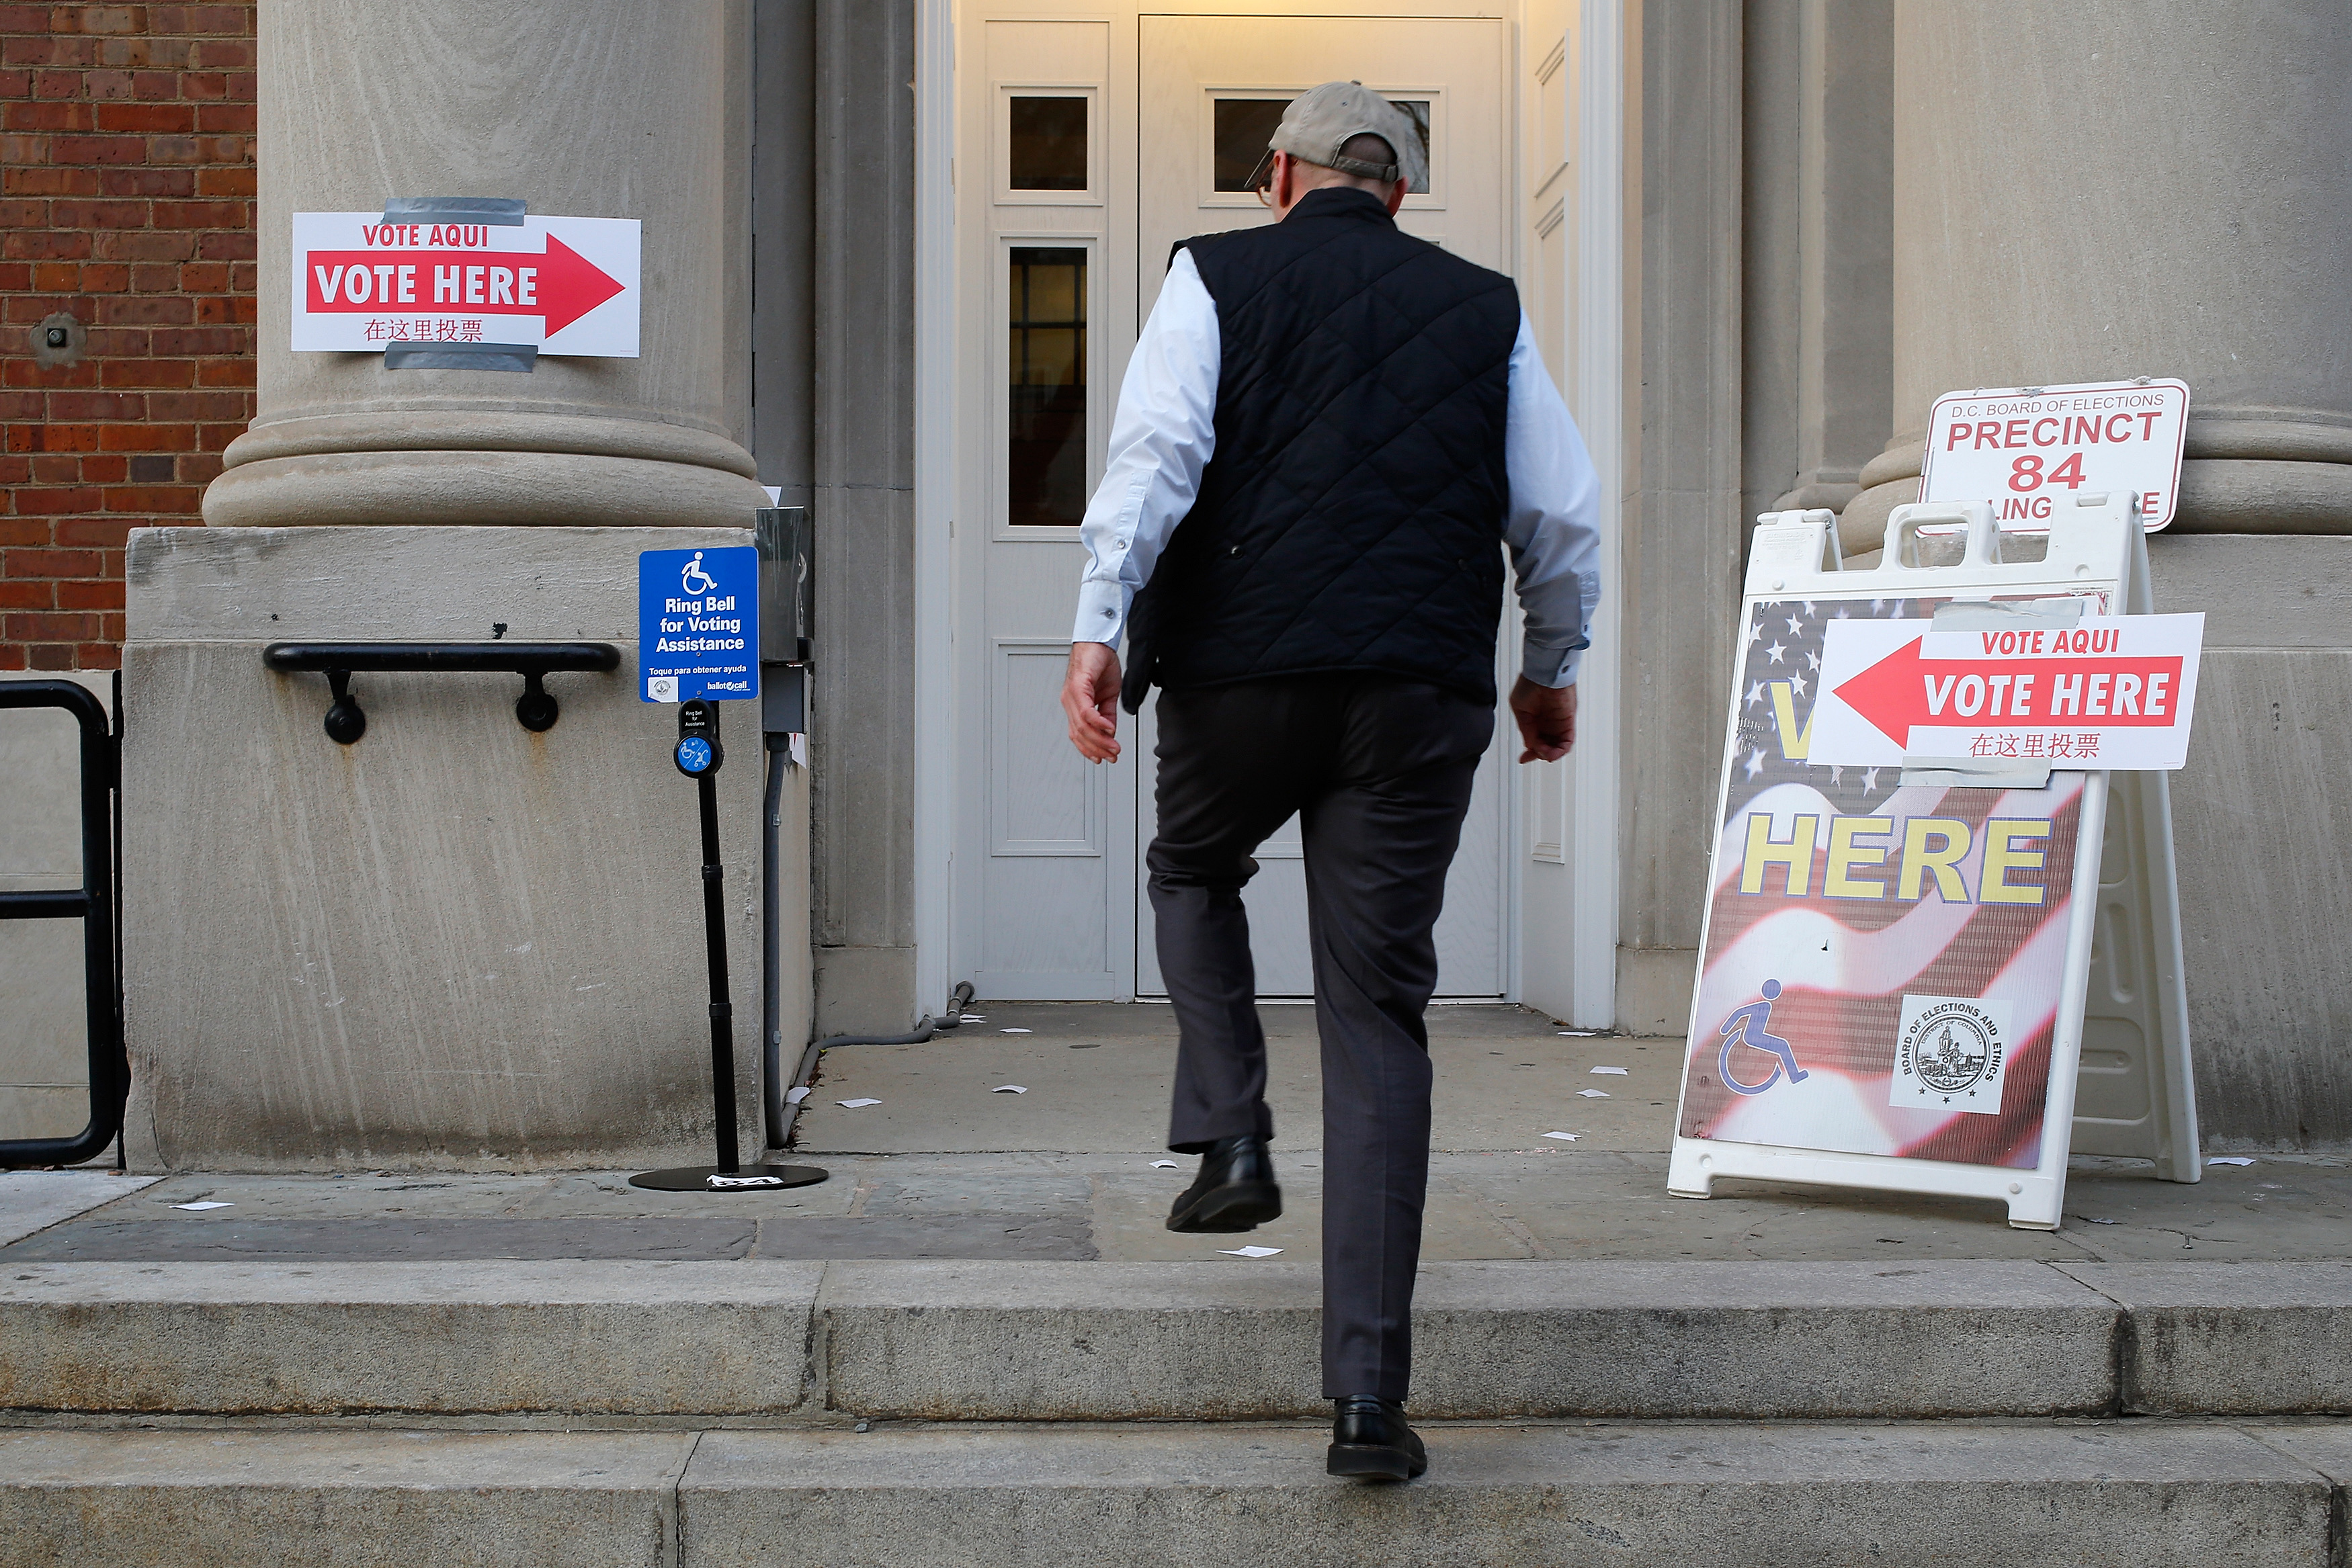 A voter enters the polling place on Election Day at Stuart-Hobson Middle School in Washington, DC, on November 4, 2014.